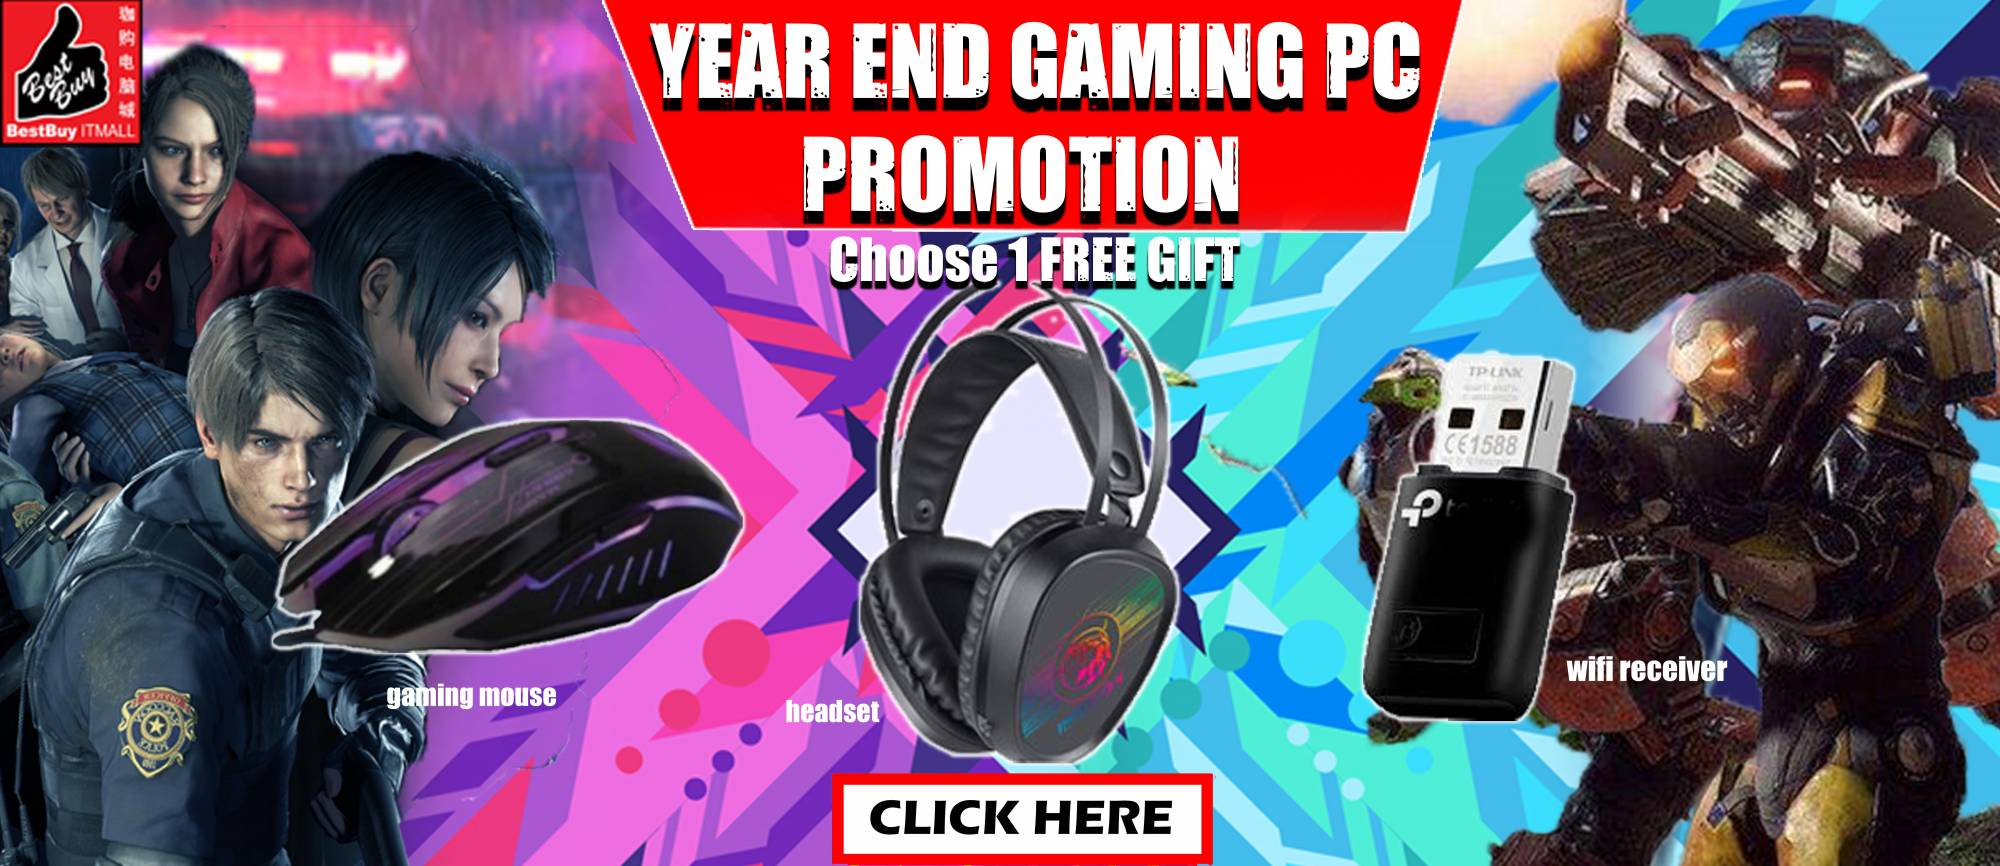 Year End PC promo 2019